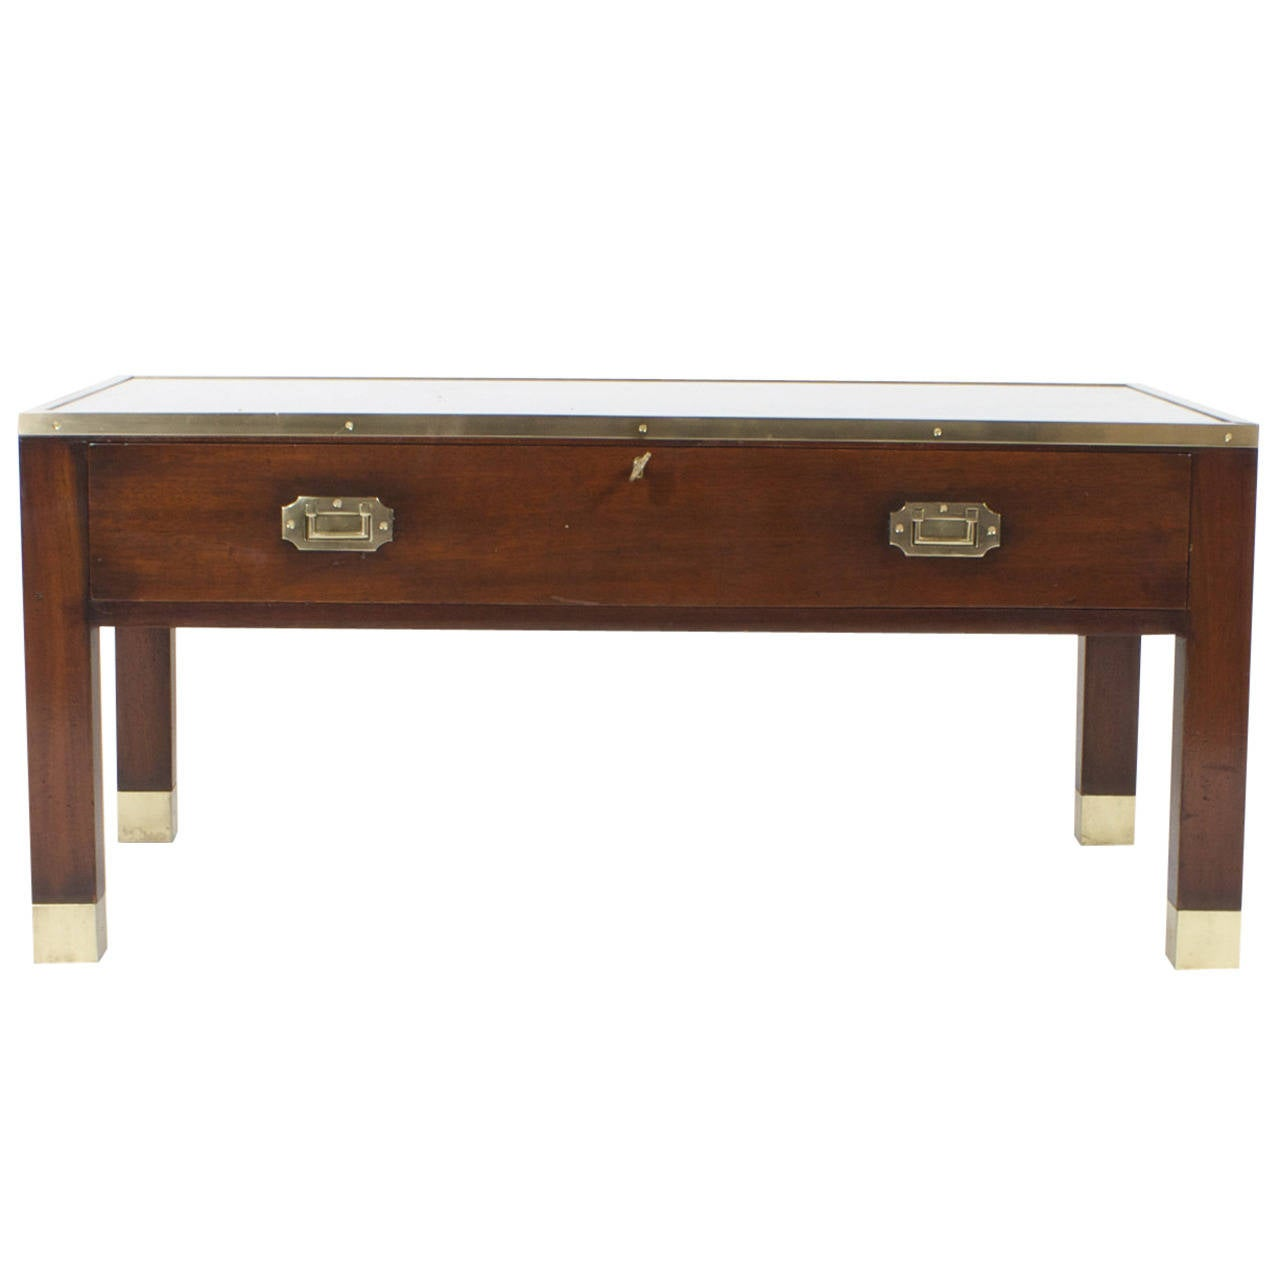 Campaign Style Cocktail Or Coffee Table With Display Case At 1stdibs